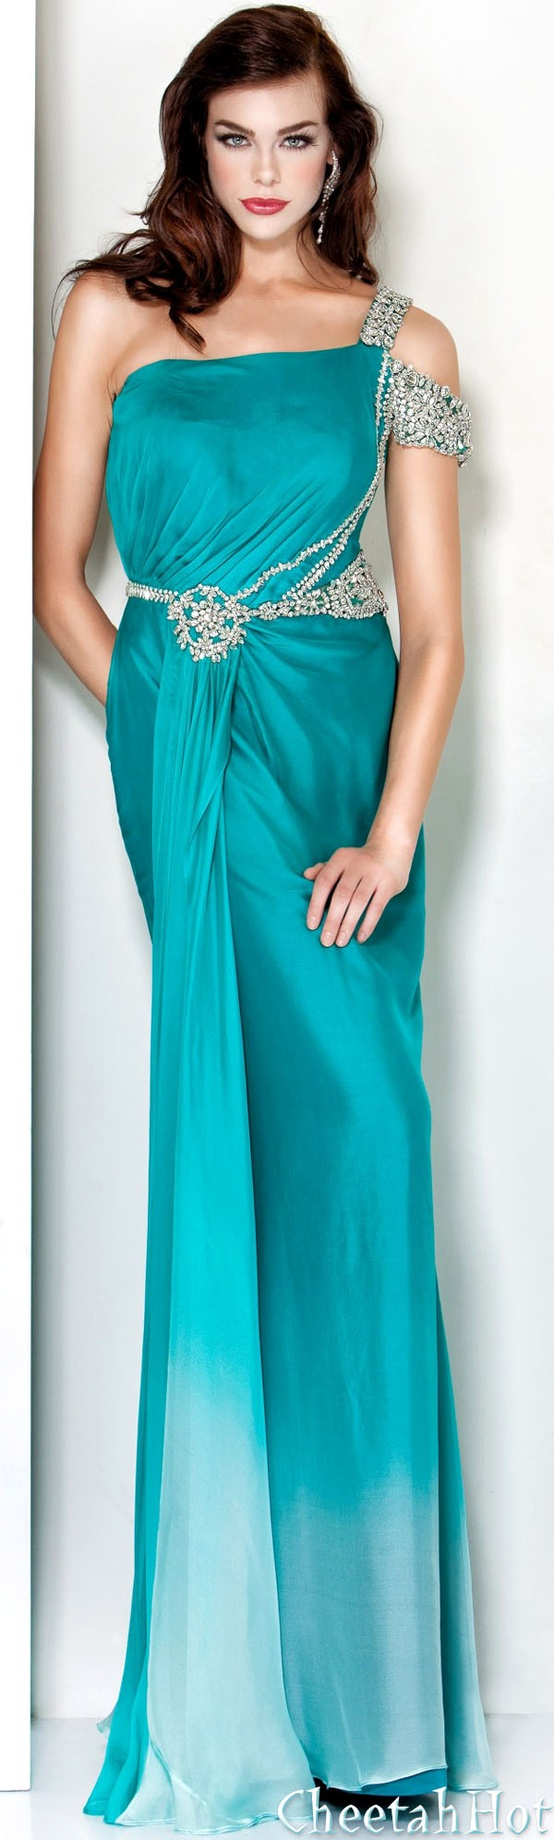 Jovani authentic designer dress long jewel gown turquoiseombre